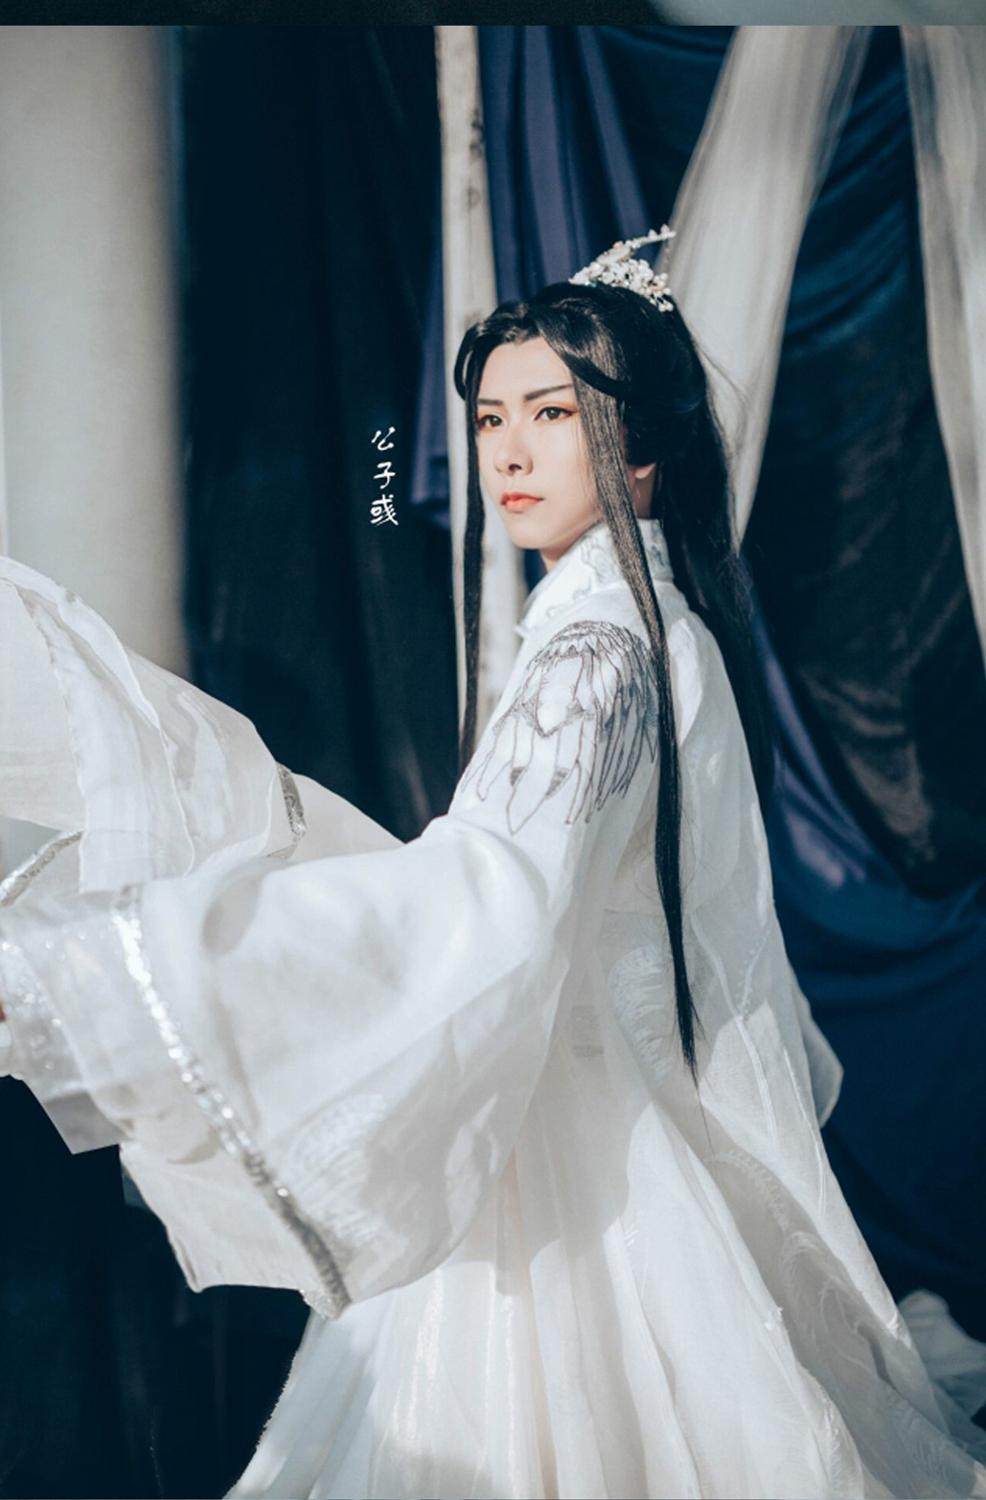 Chu Wanning Embroidery White Prince Costume Hanfu Immortal White Cat Master Cos Bai ZiHua Cosplay Hanfu Male Swordman Costume